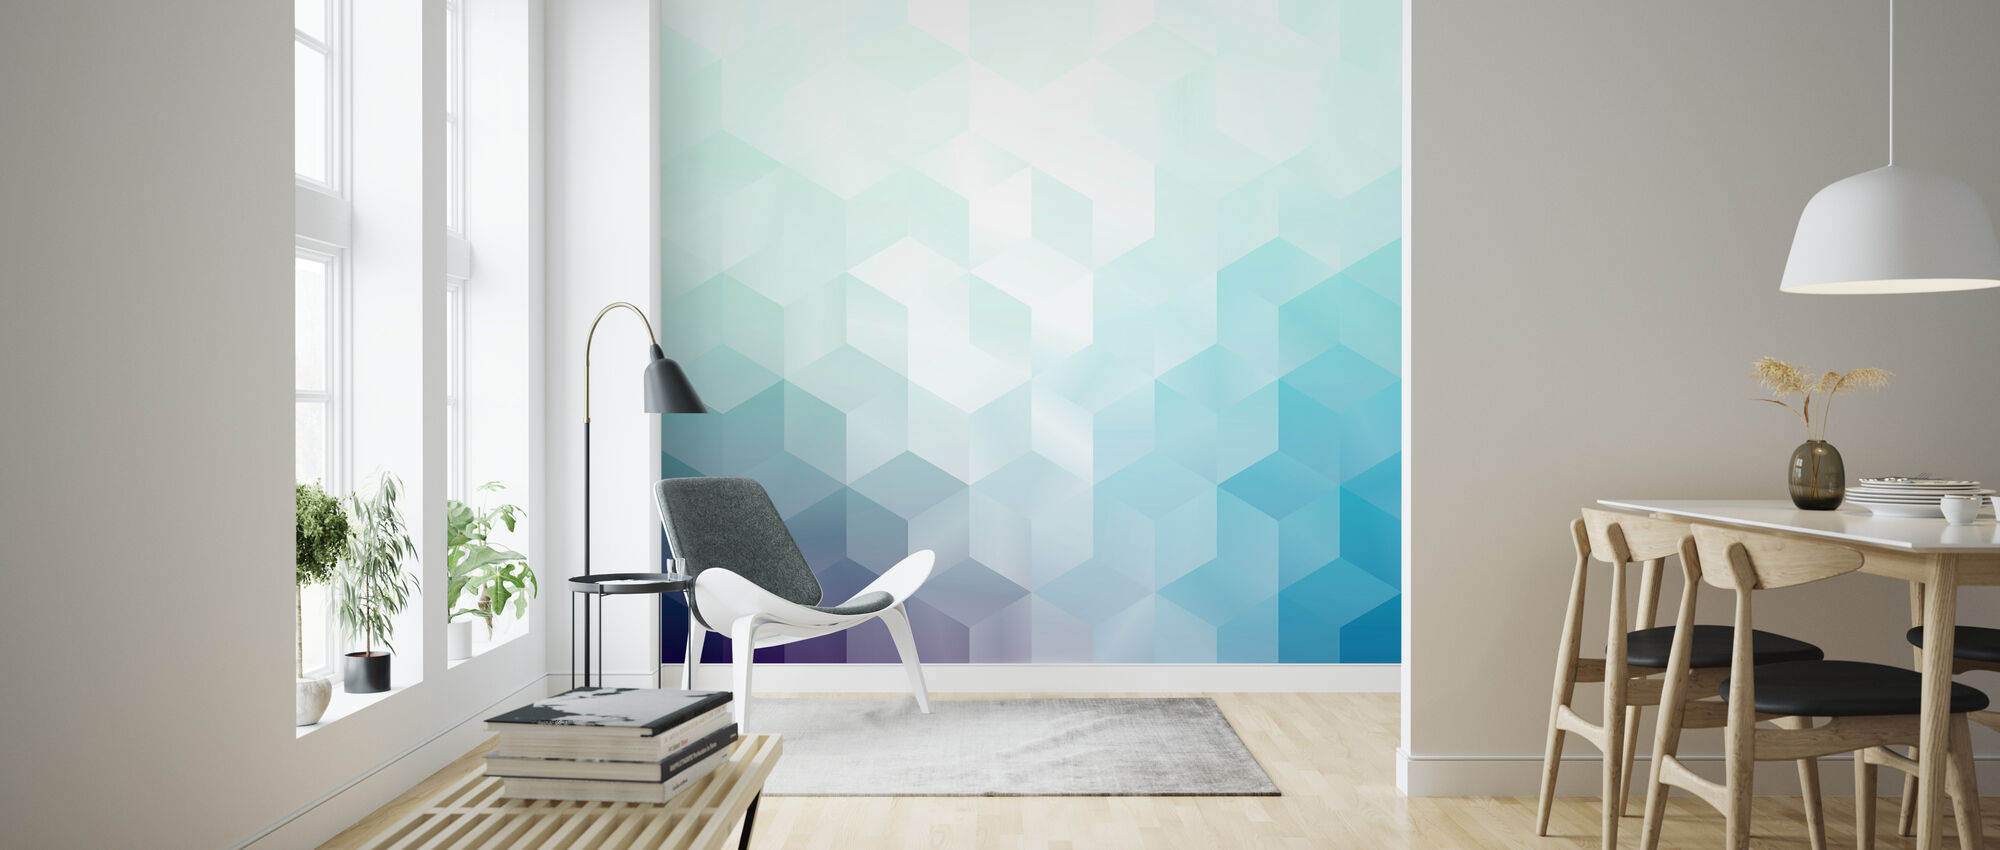 Cool Abstract Pattern - Wallpaper - Living Room